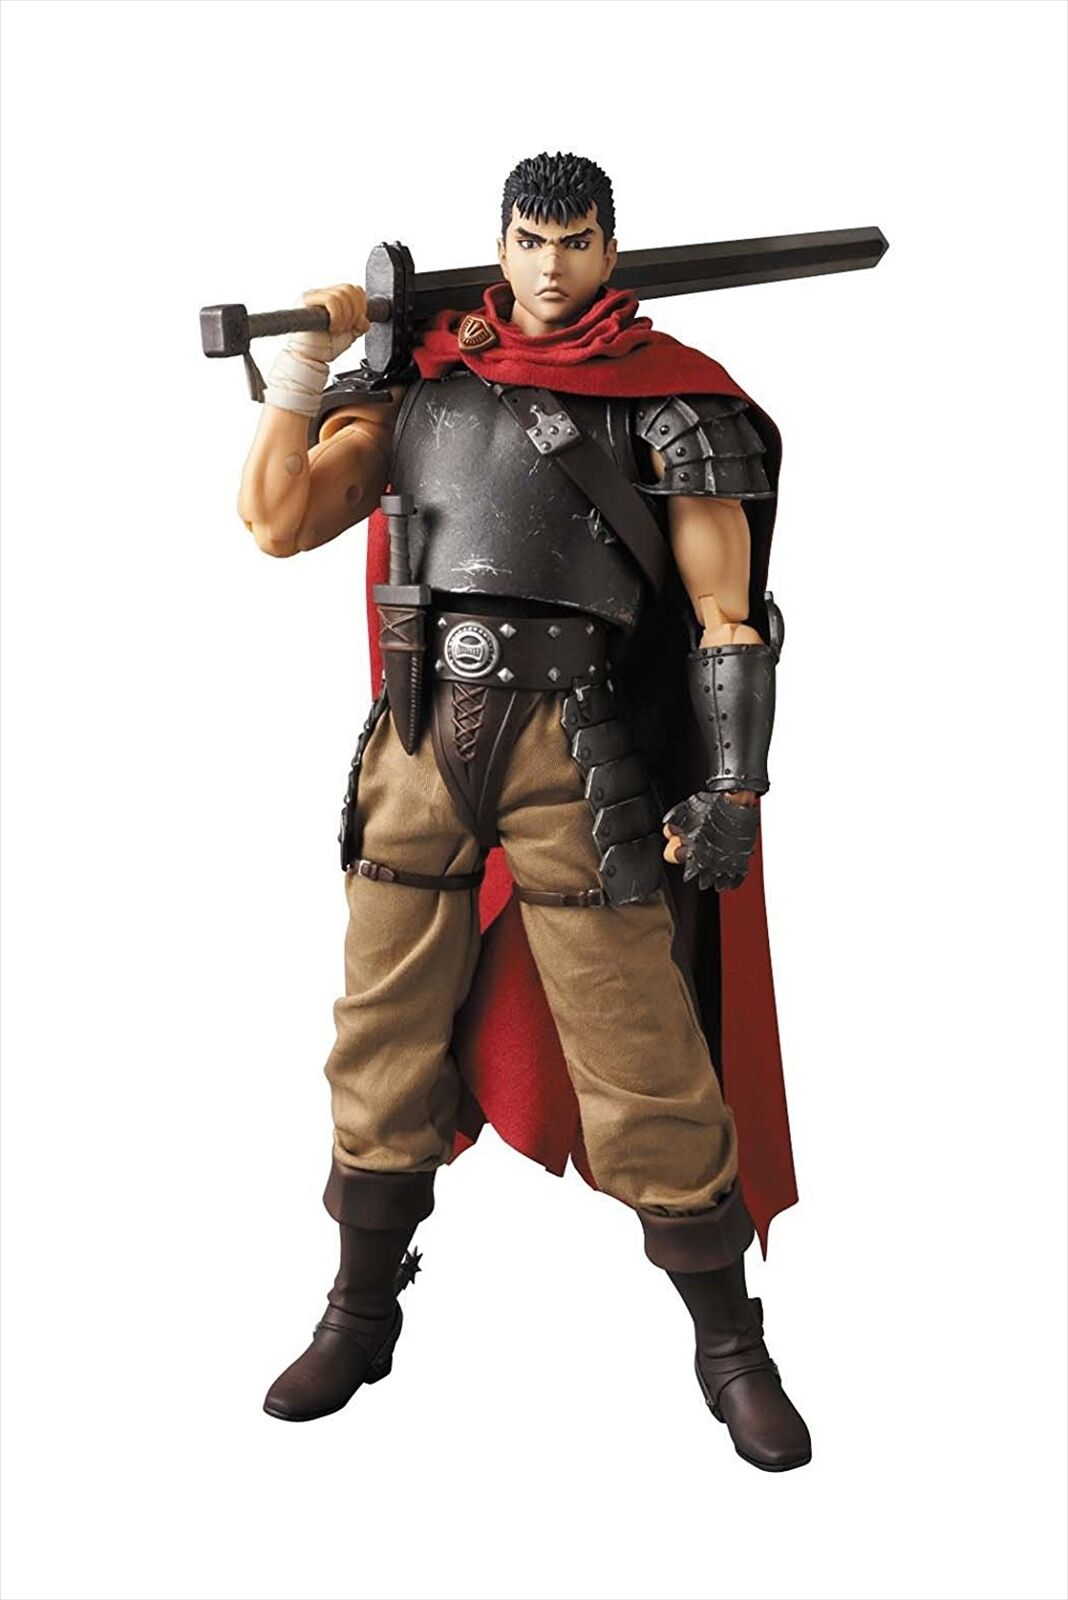 Medicom RAH Berserk Band of The Hawk Ver. Guts Guts Guts Real Action Hero 1 6 Figure ba7751